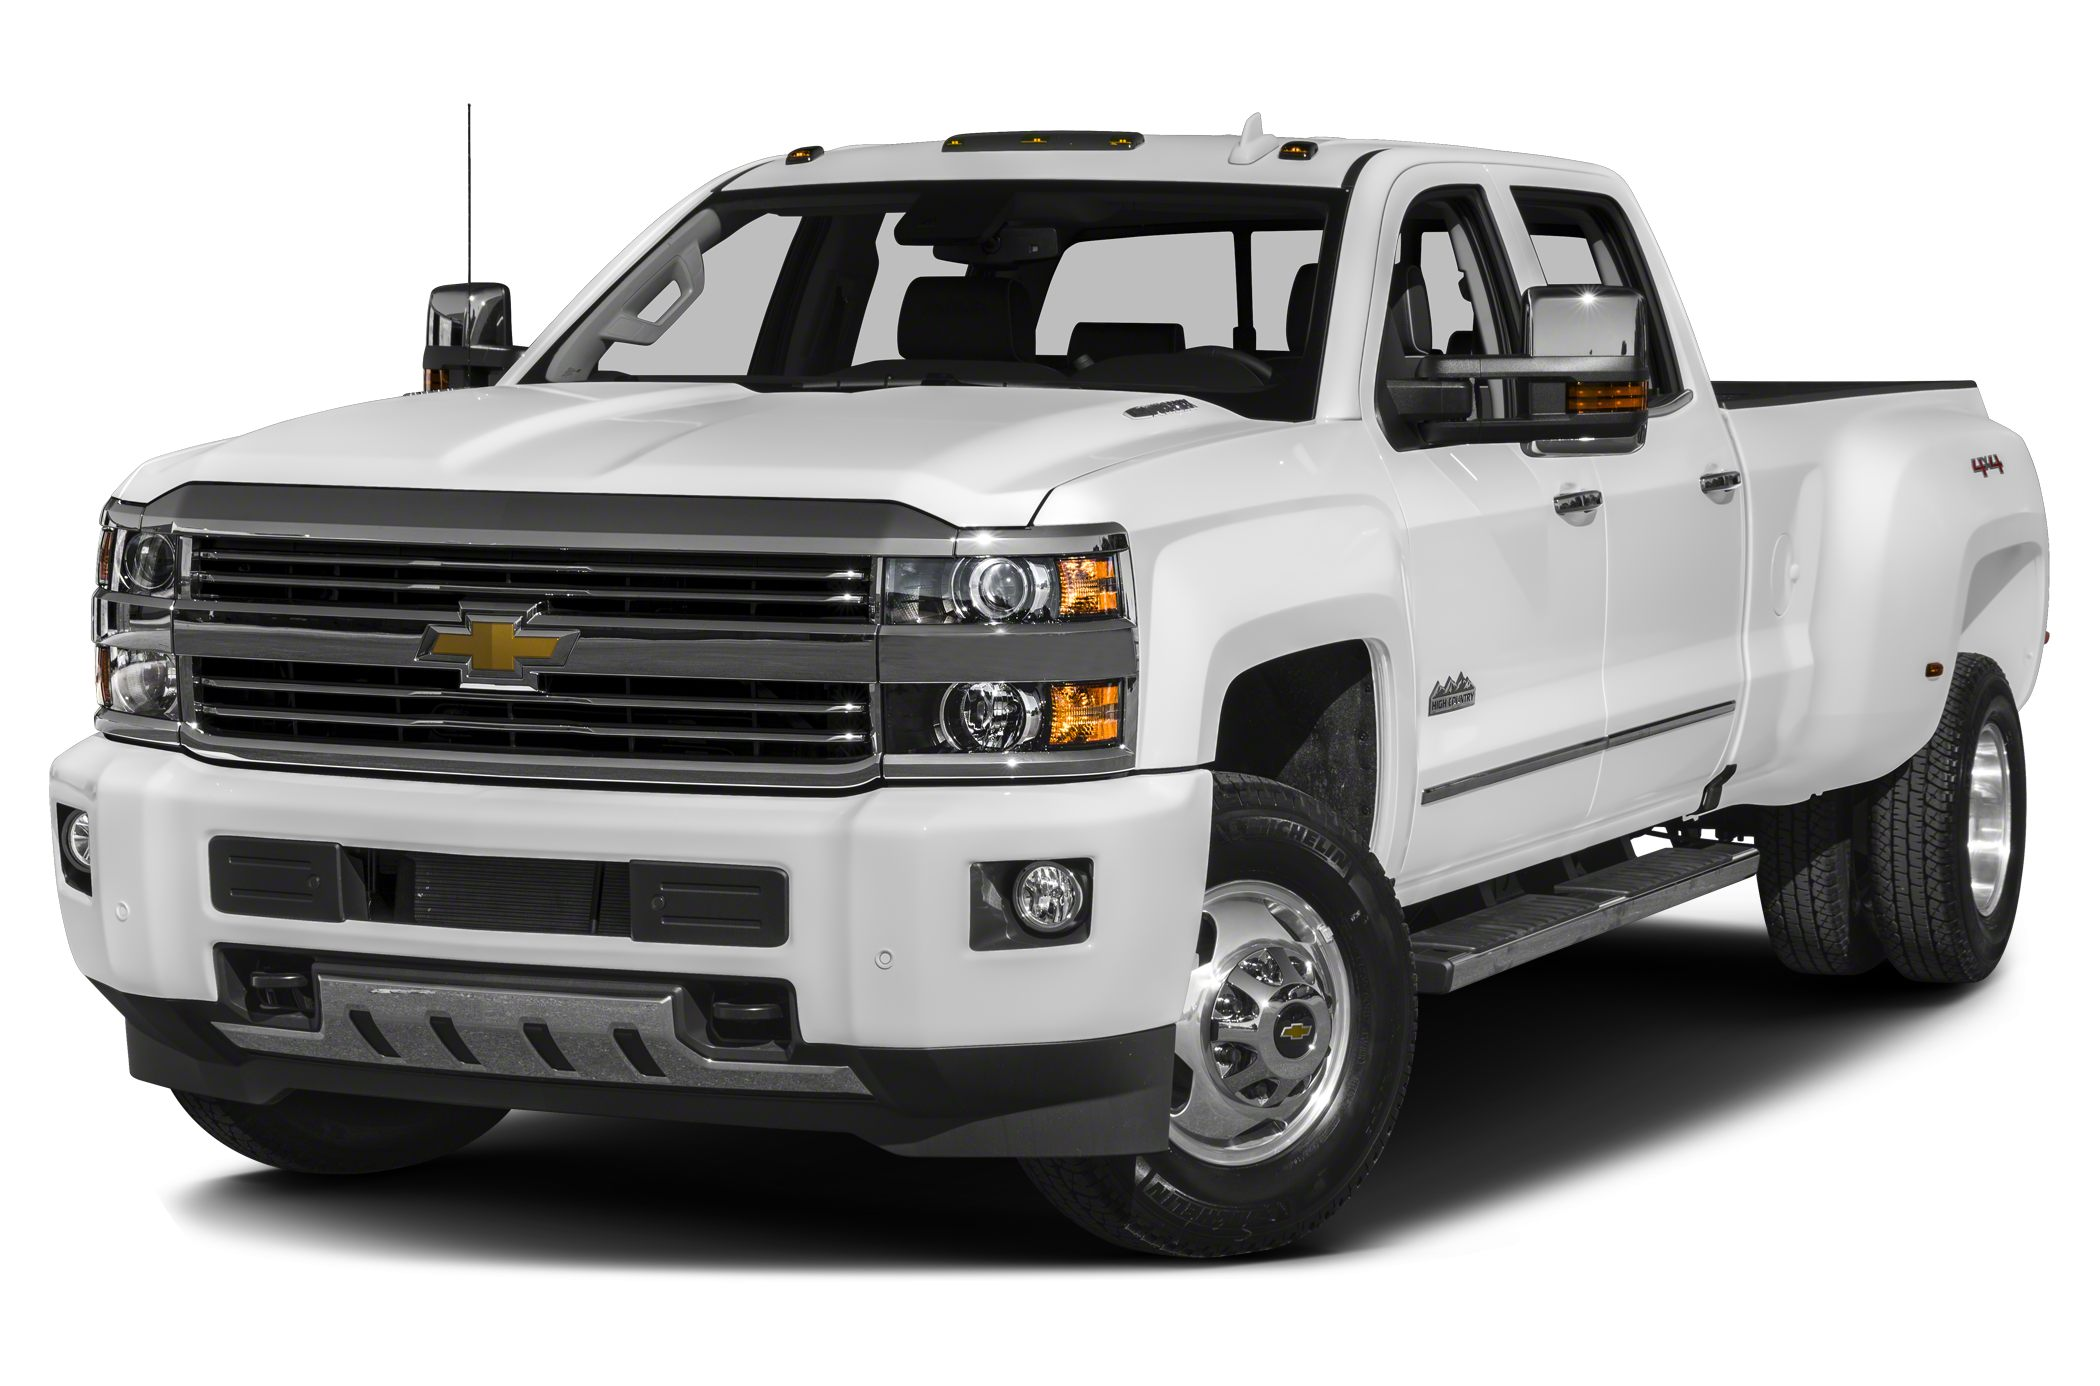 2017 Chevrolet Silverado 3500hd High Country 4x4 Crew Cab 167 7 In Wb Drw Pricing And Options